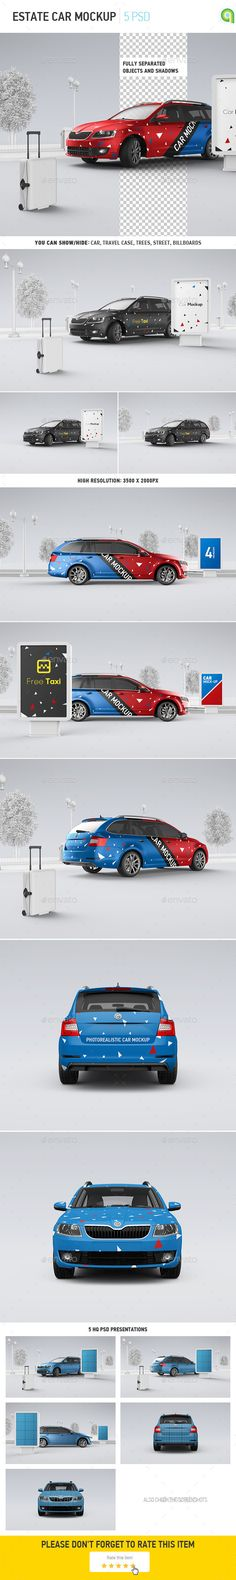 Car Mockup | Billboard Mock-up | Buy and Download: http://graphicriver.net/item/car-mockup-billboard-mockup/9959203?ref=ksioks